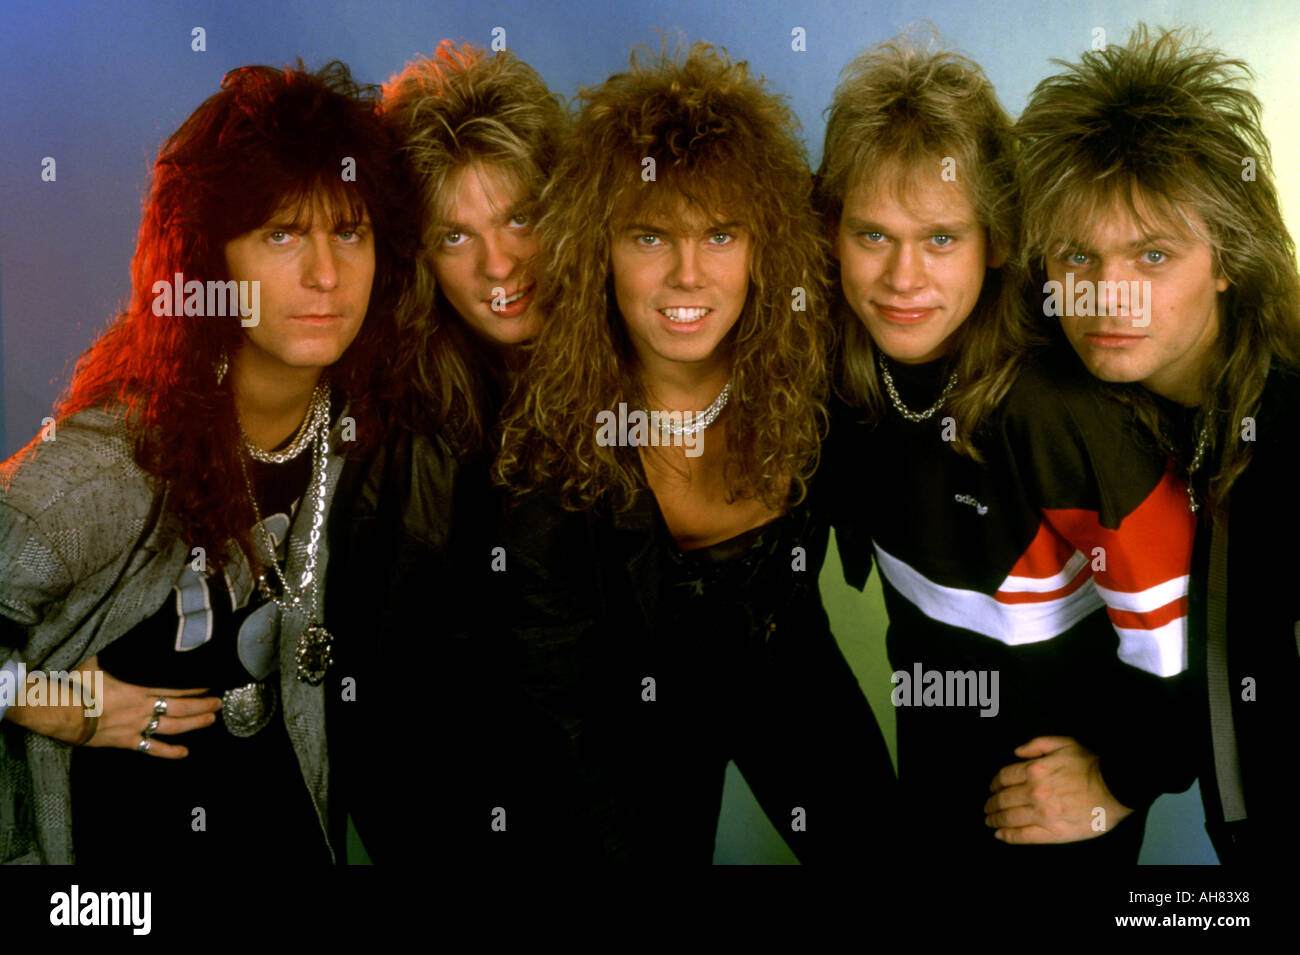 EUROPE Swedish rock group in 1980s - Stock Image